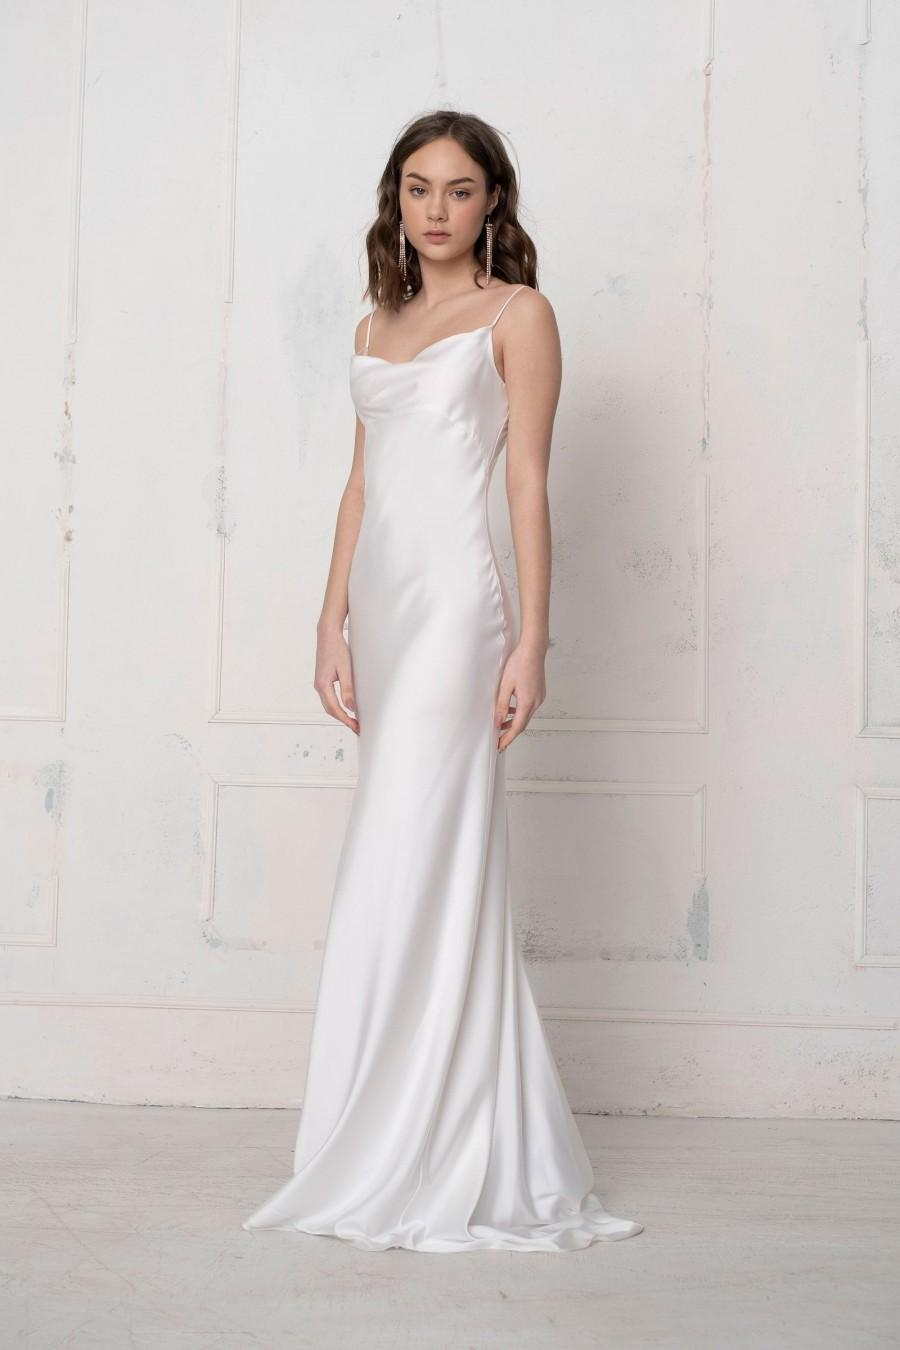 Wedding - FLORIAN simple wedding dress Satin beach prom bridesmaid wedding off the shoulder  Long ivory cocktail with a train mermaid  dress